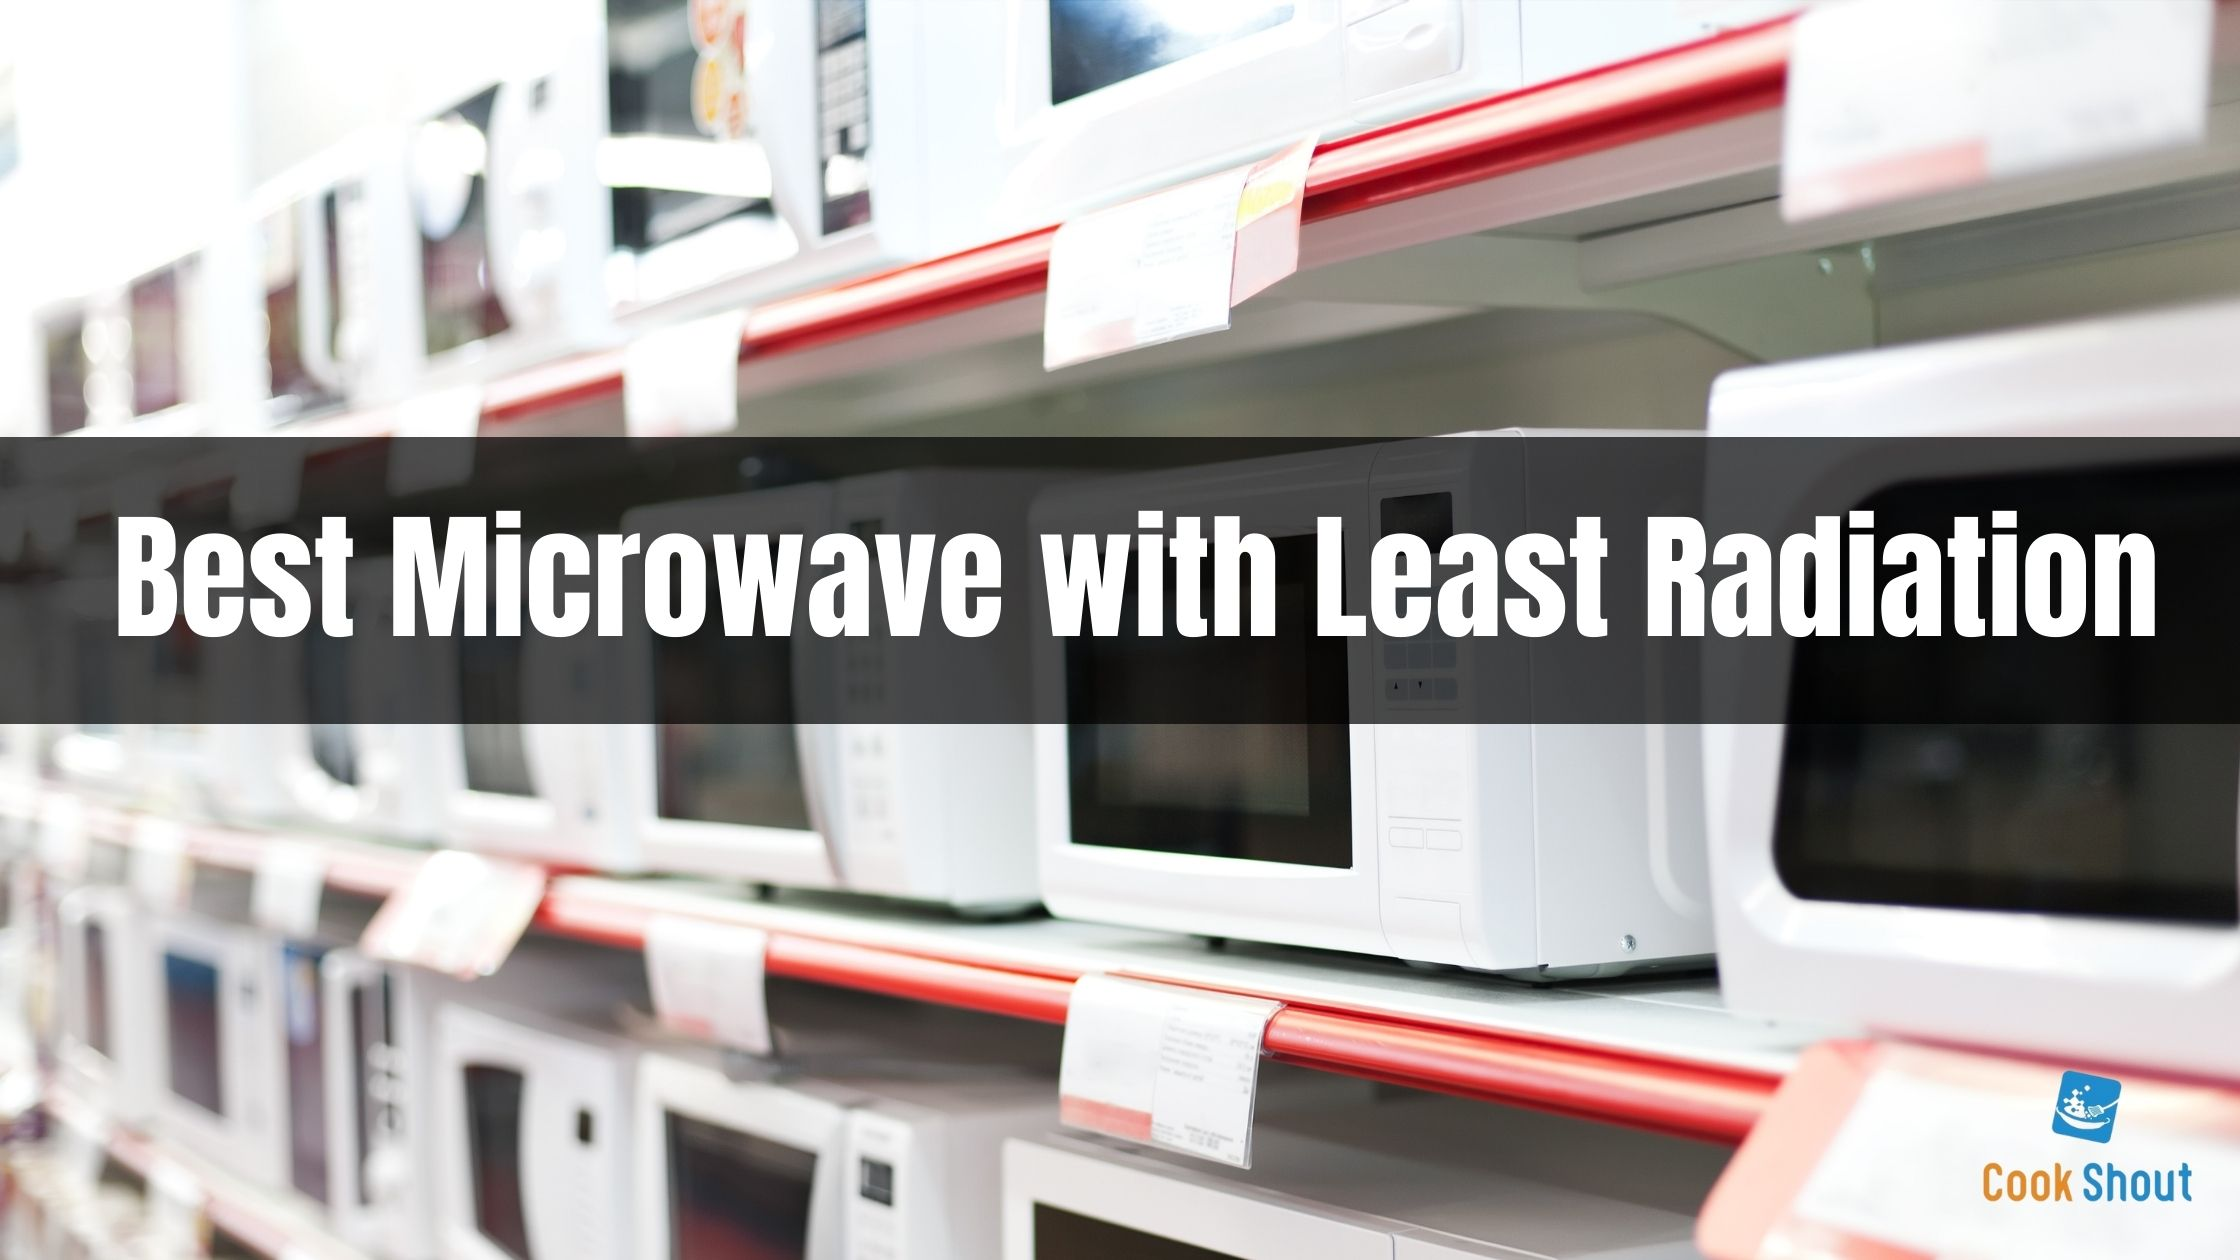 Best Microwave with Least Radiation